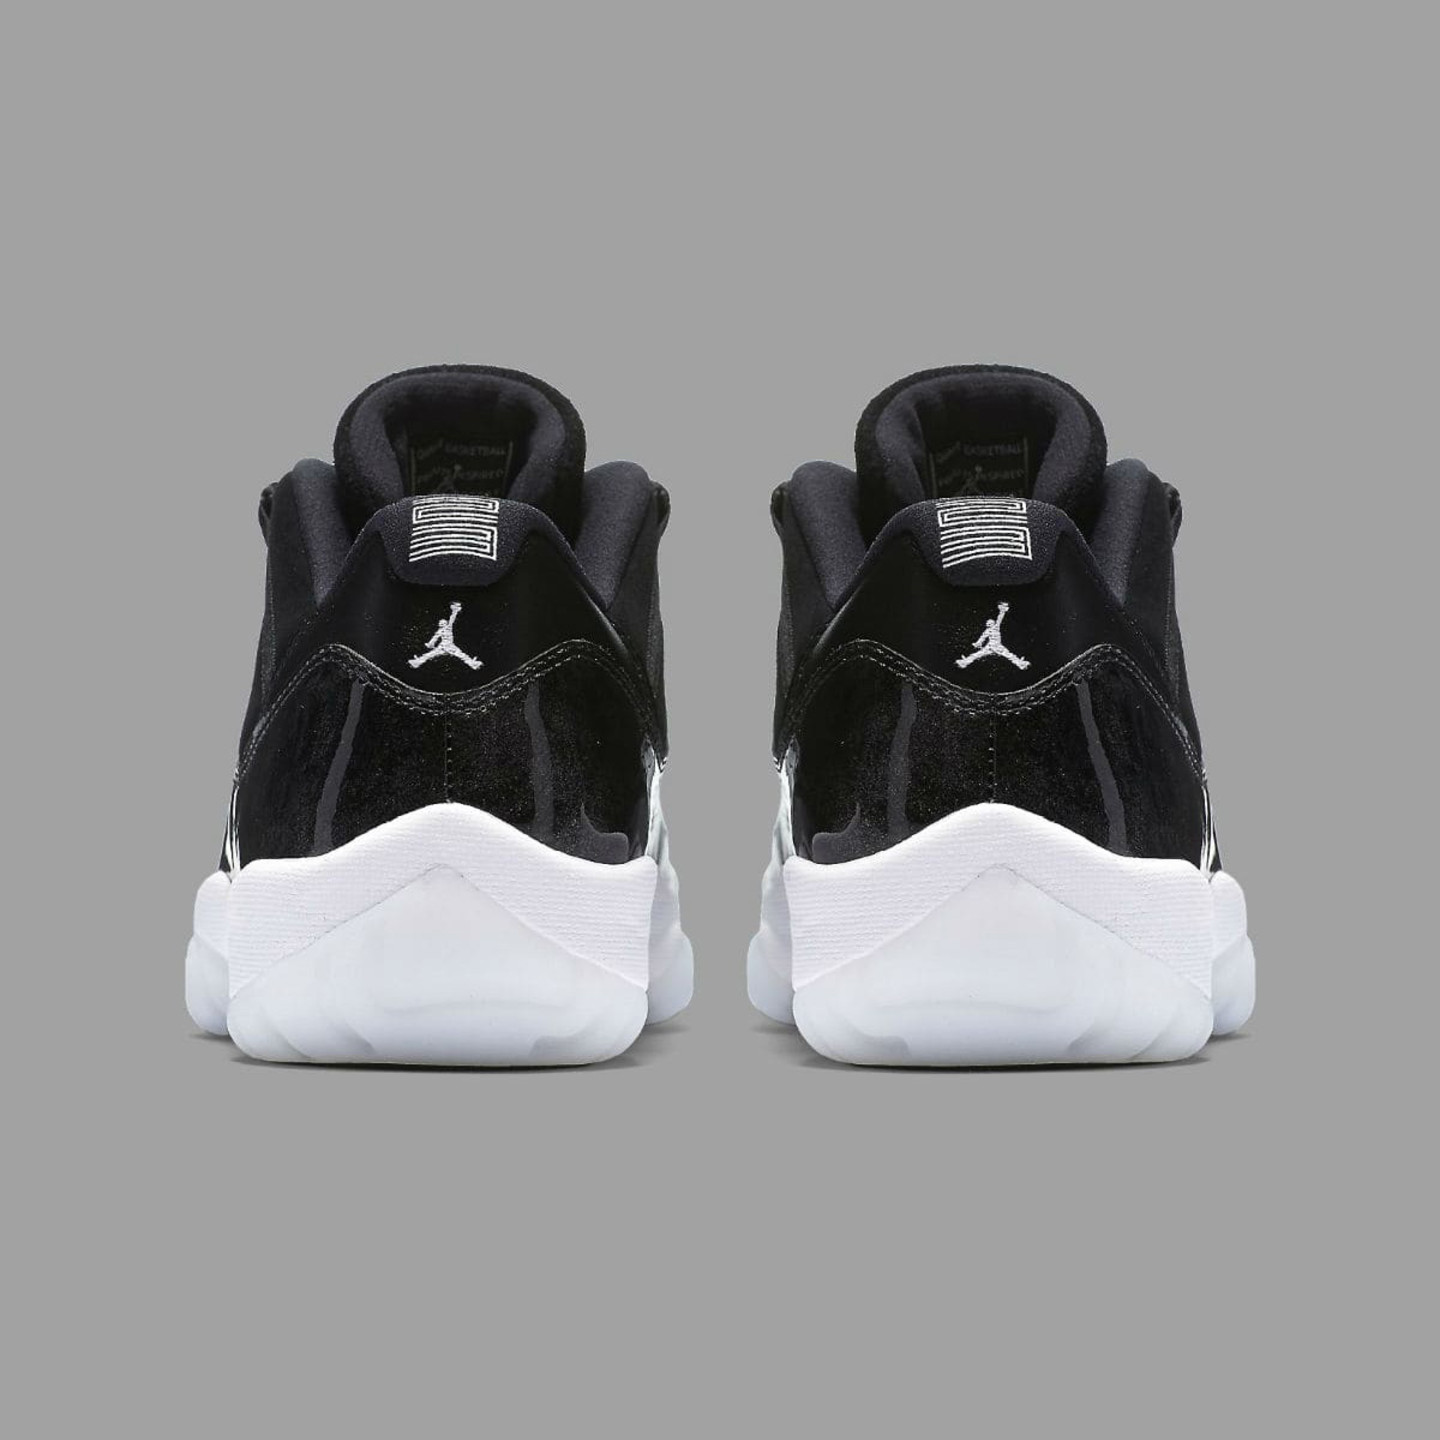 Jordan Air Jordan 11 Retro Low 'Barons' Black / White / Metallic Silver 528895-010-42